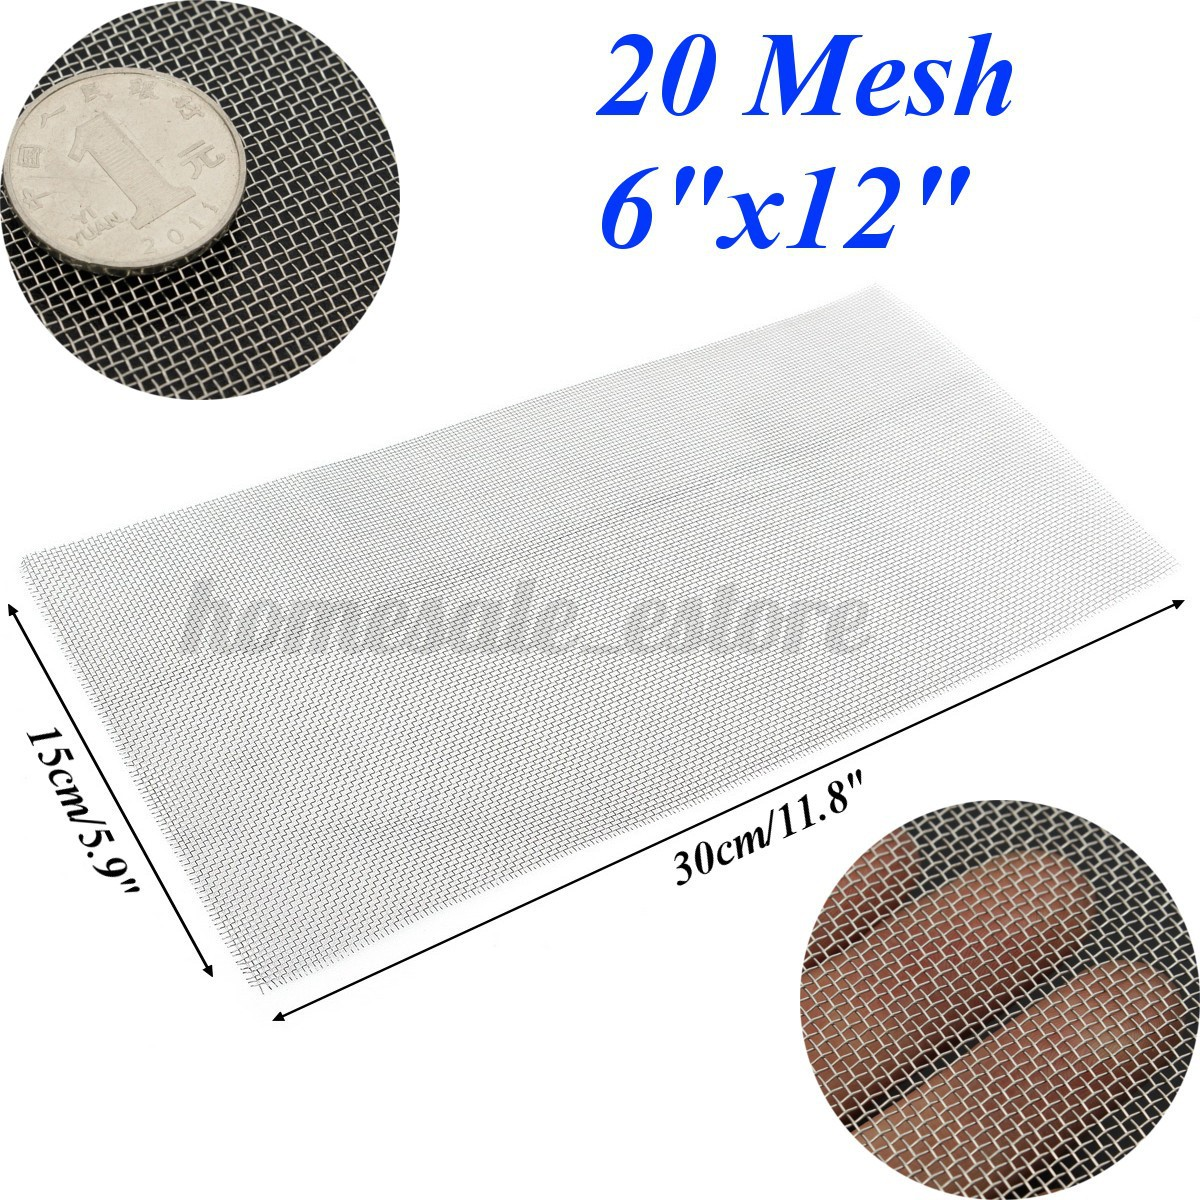 Stainless Steel 5/8/20/30/40 Mesh Woven Cloth Screen Wire Filter ...